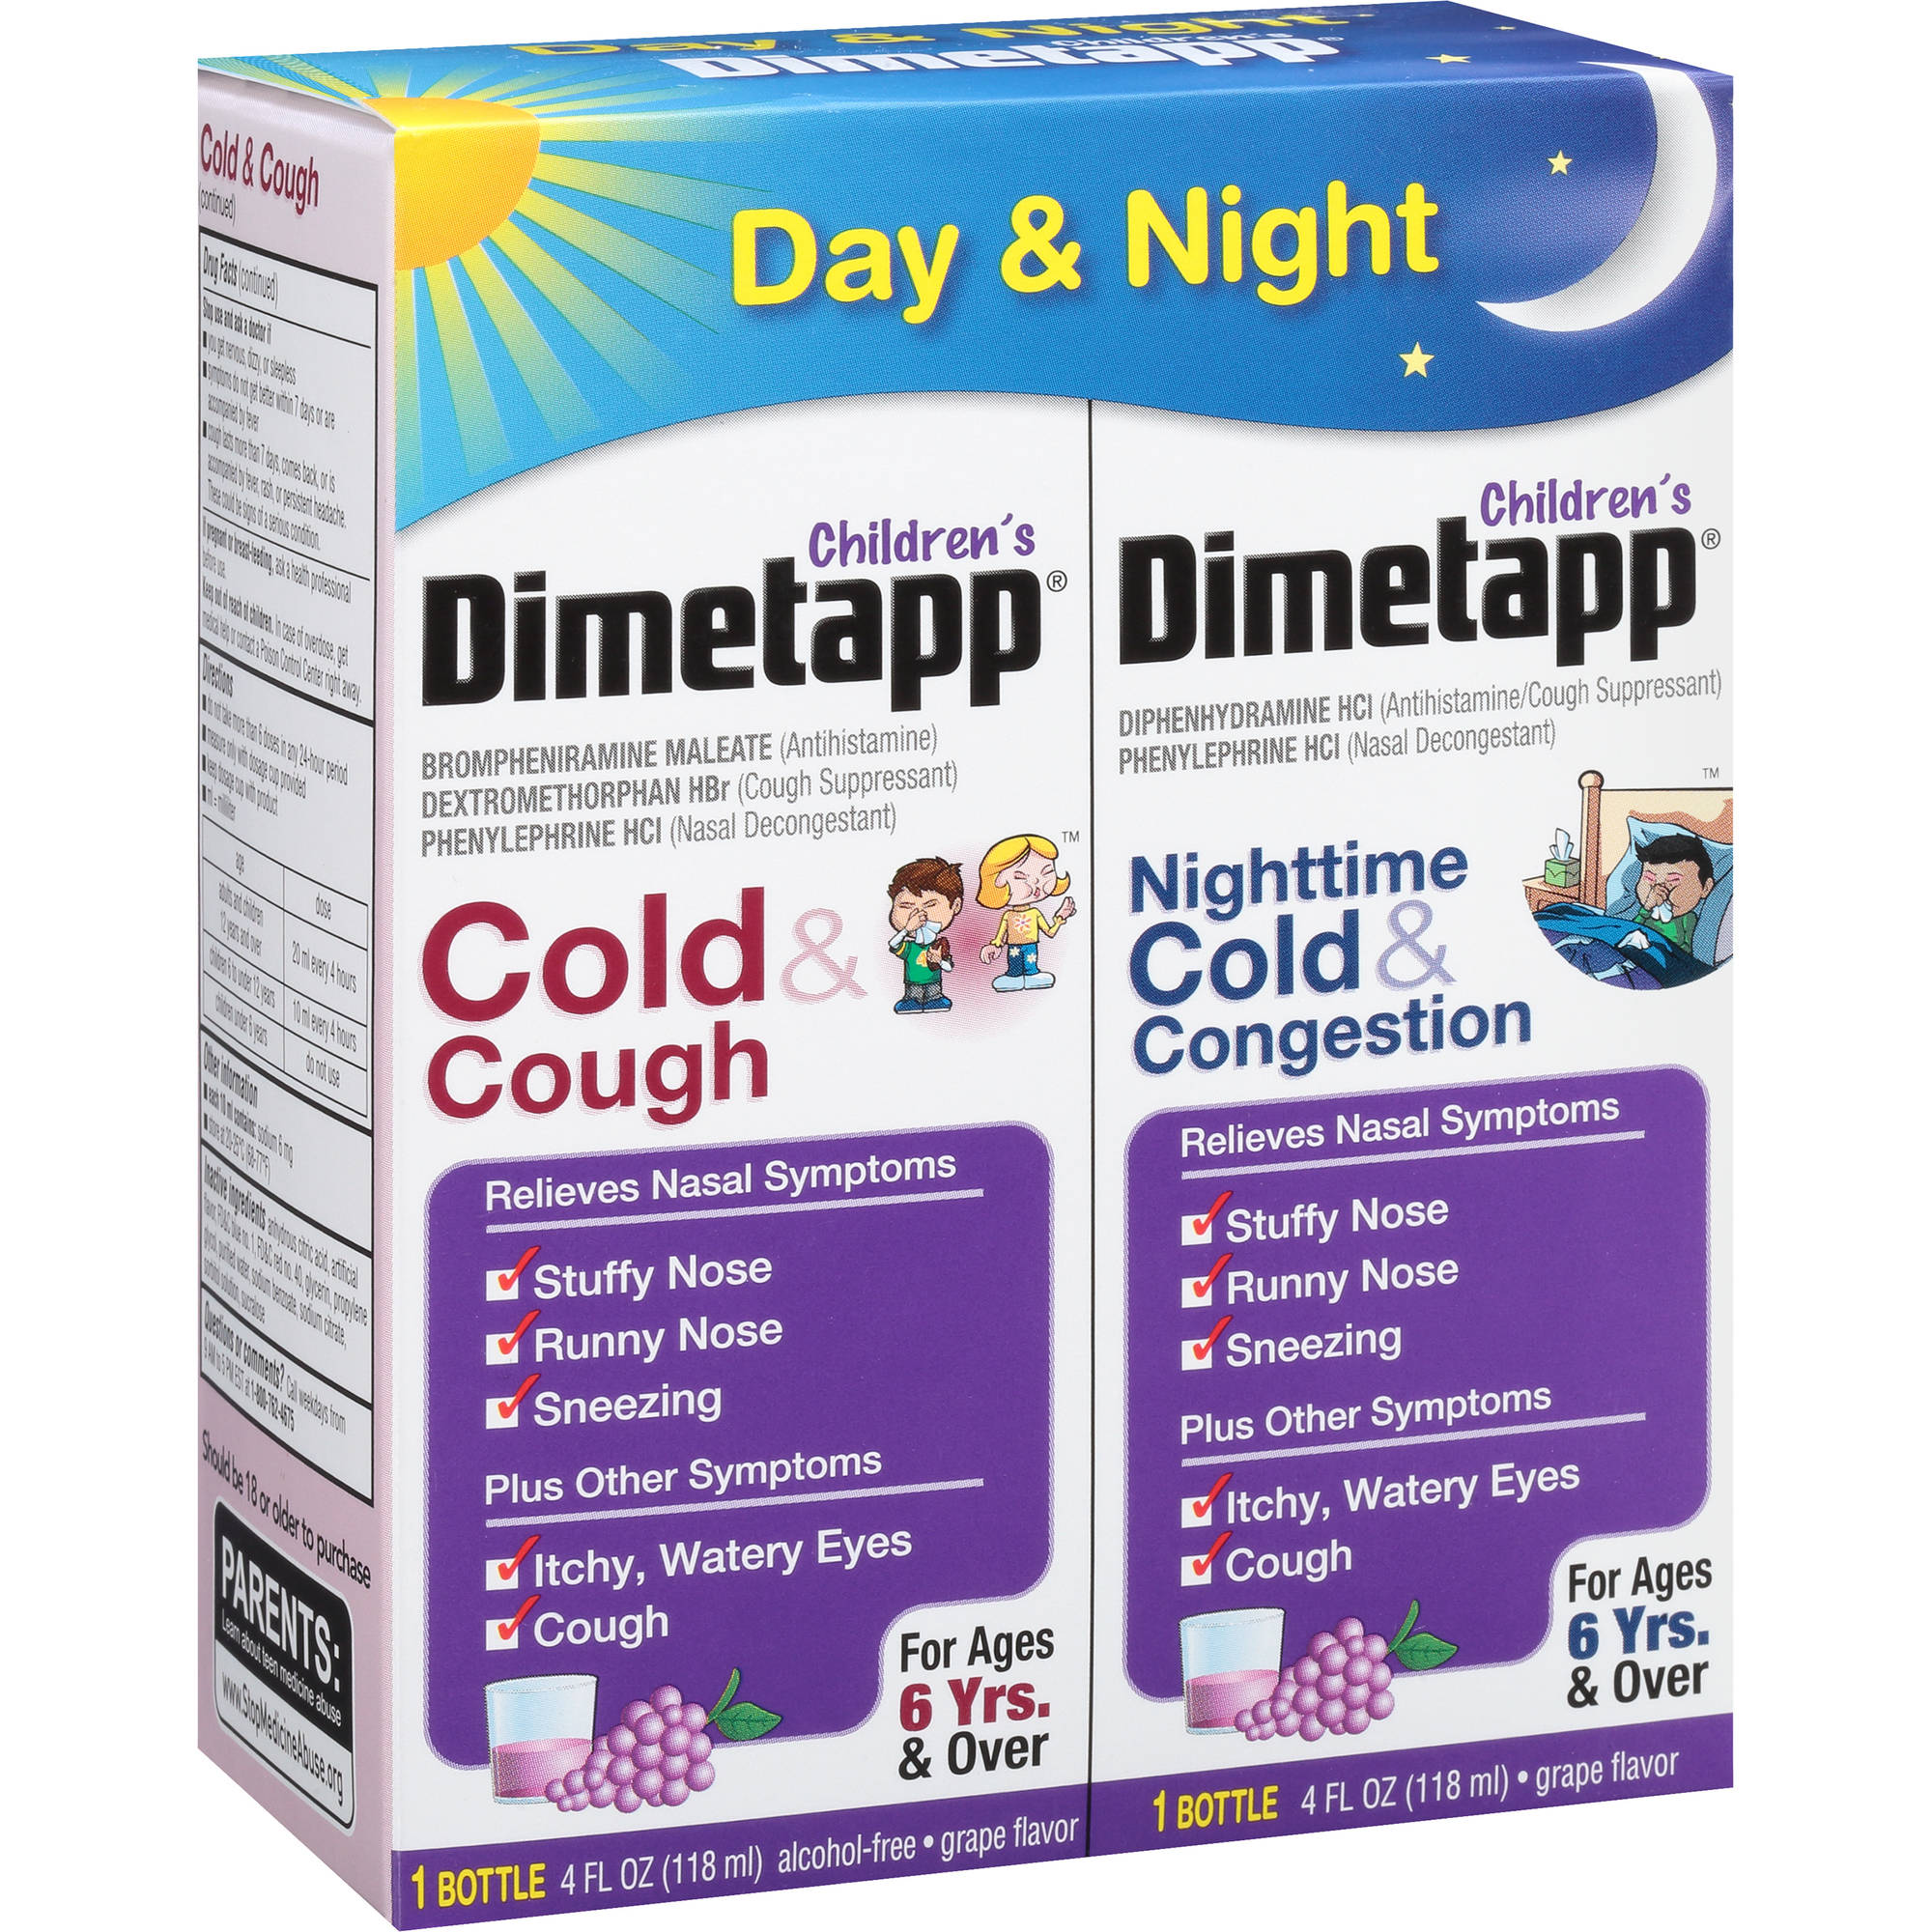 Children's Dimetapp Cold & Cough Antihistamine, Cough Suppressant & Decongestant Liquid 8 fl oz